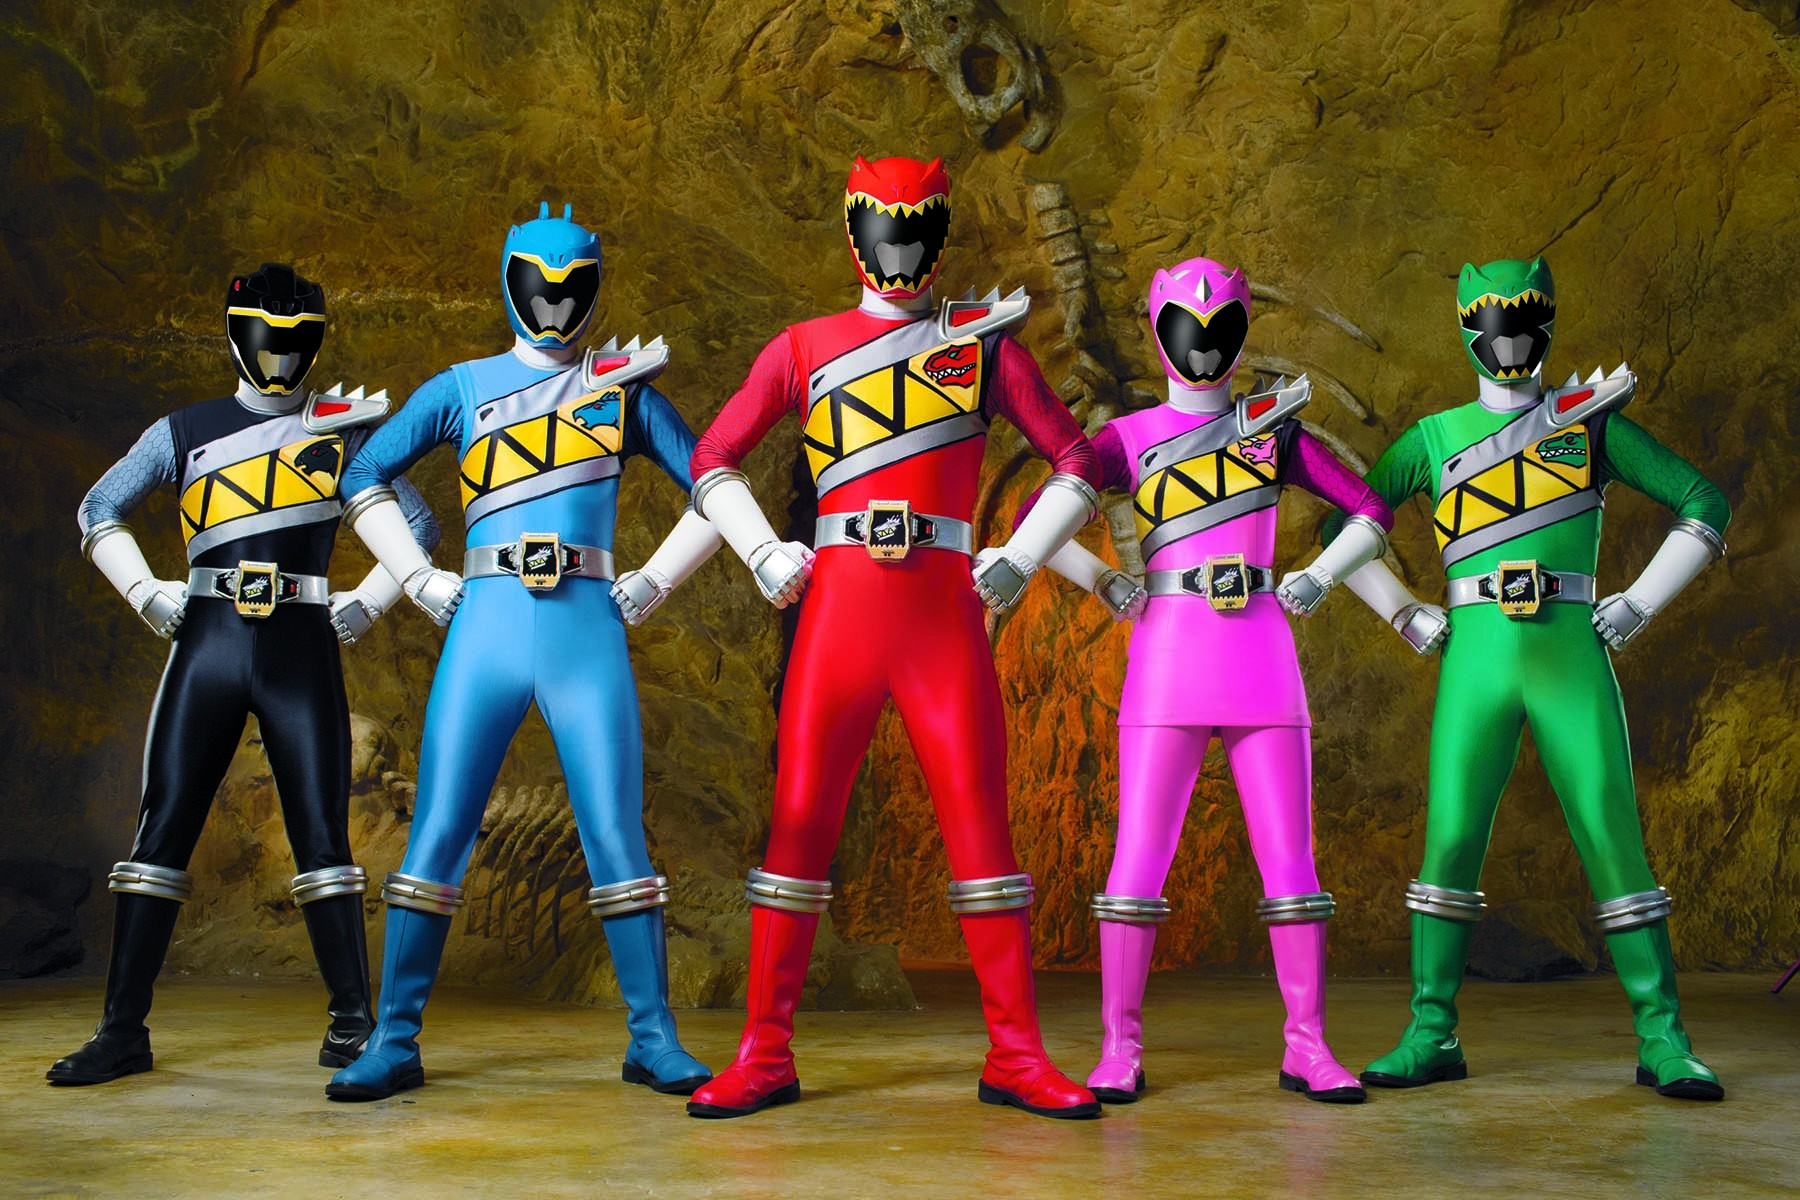 Power rangers dino charge - Dessin power rangers dino charge ...